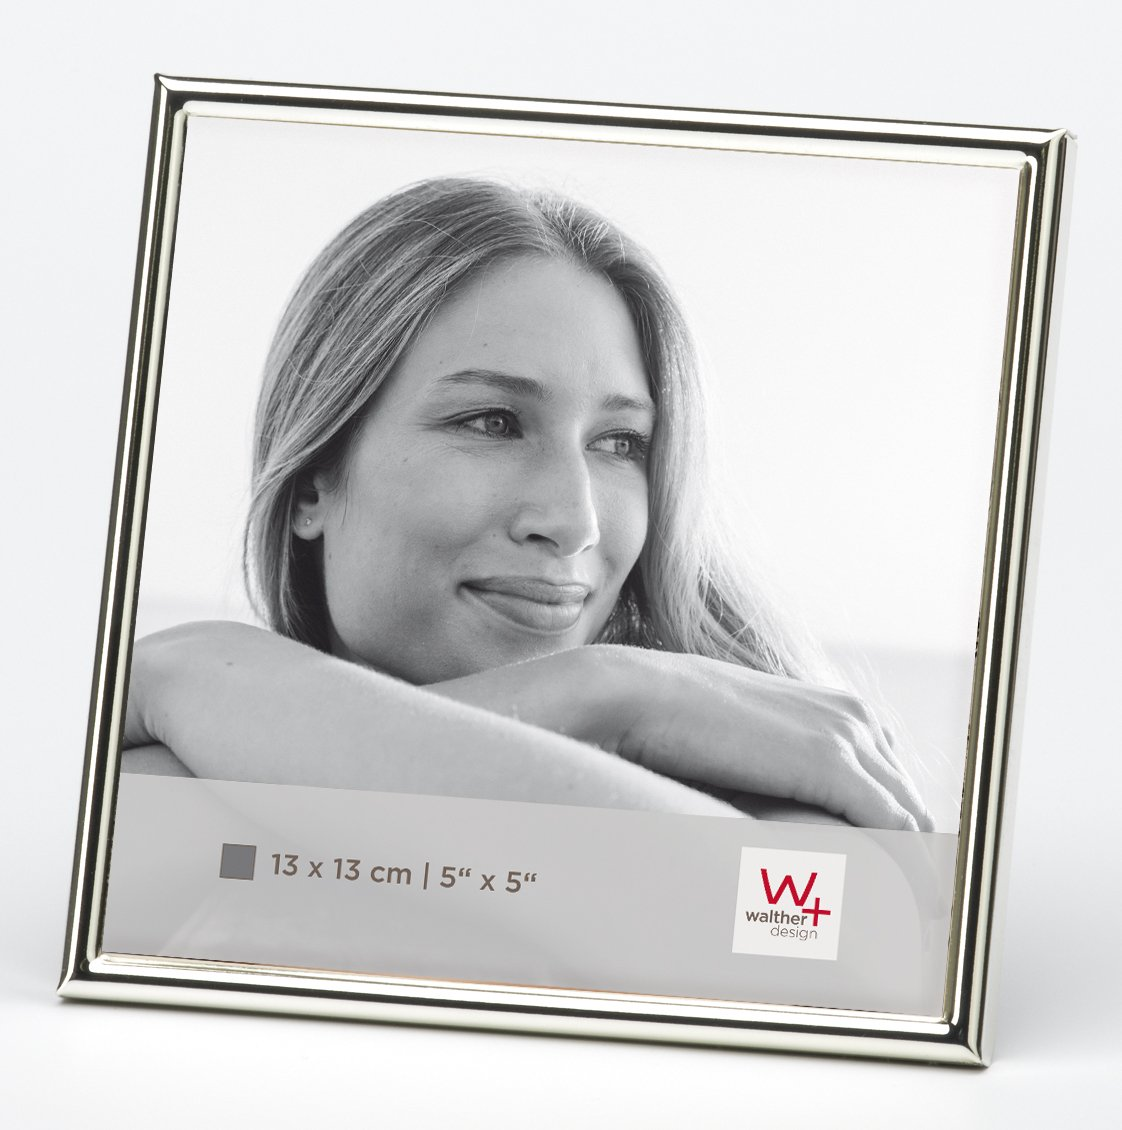 Walther design WD313S Chloe Portraitrahmen, 13 x 13 cm, silber ...